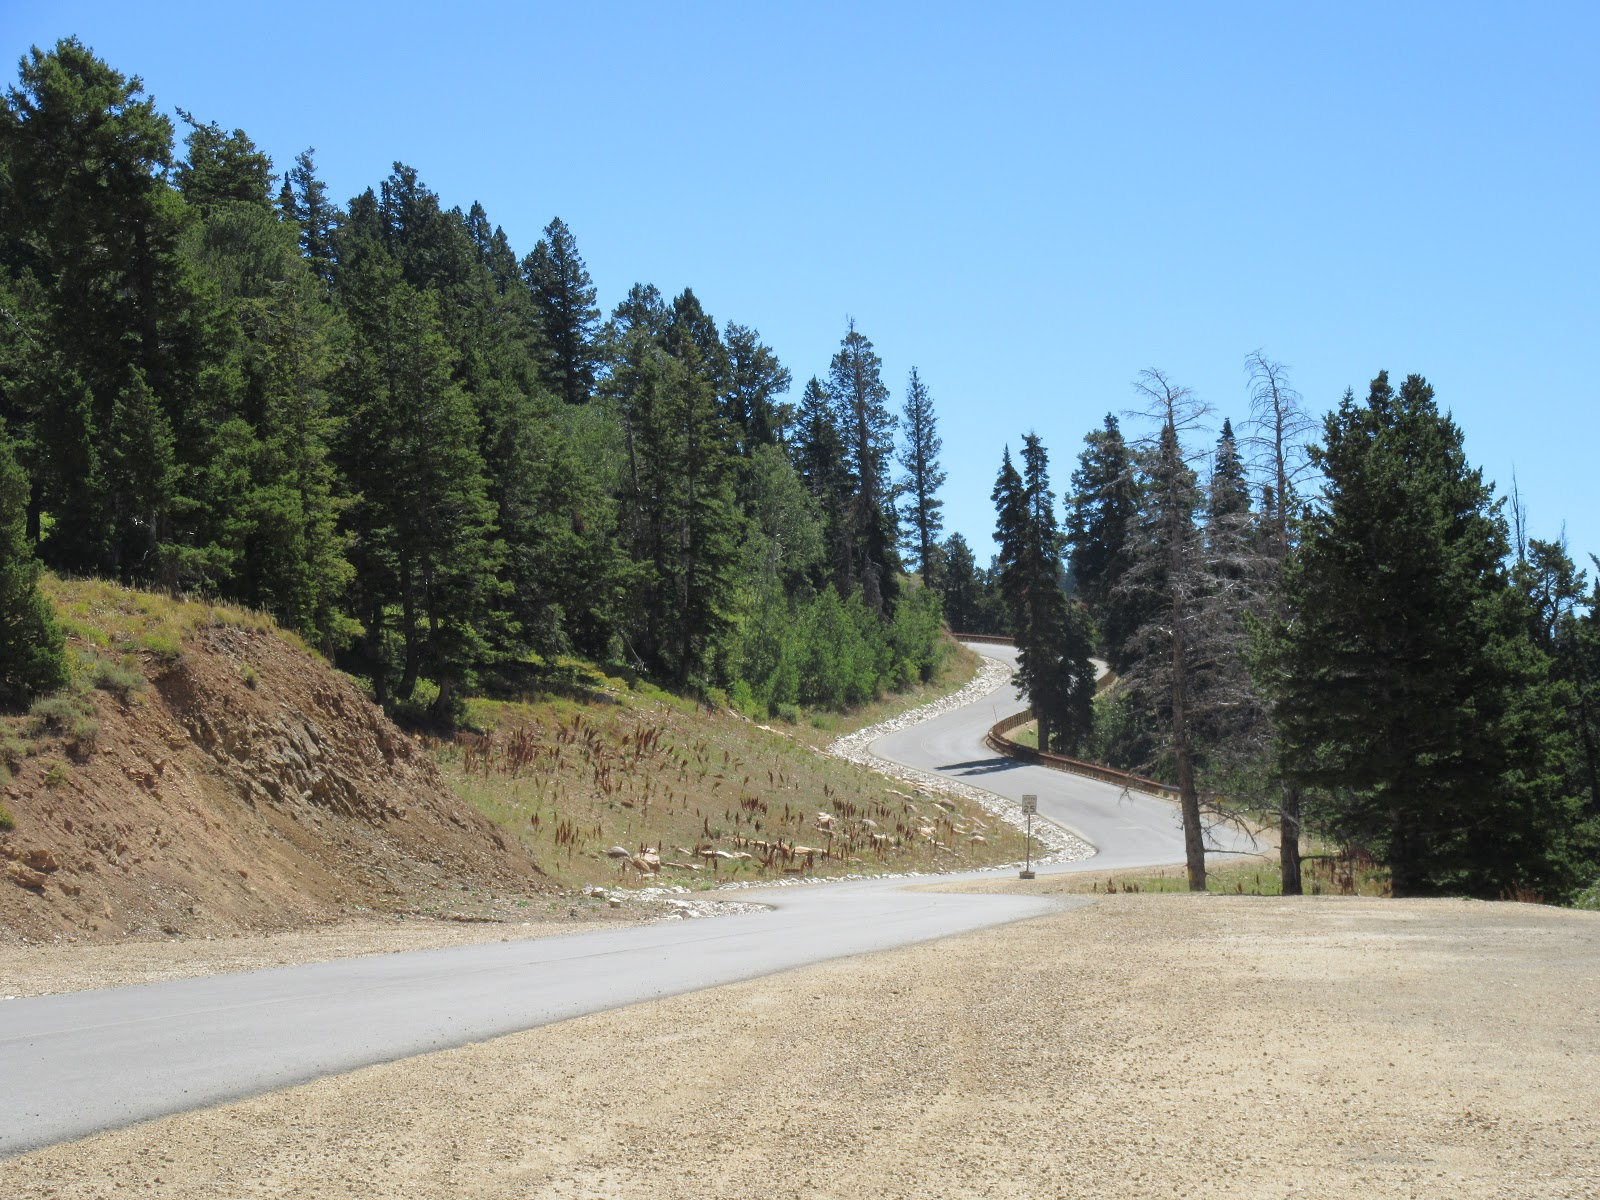 Road to top of Powder Mountain climb by bike